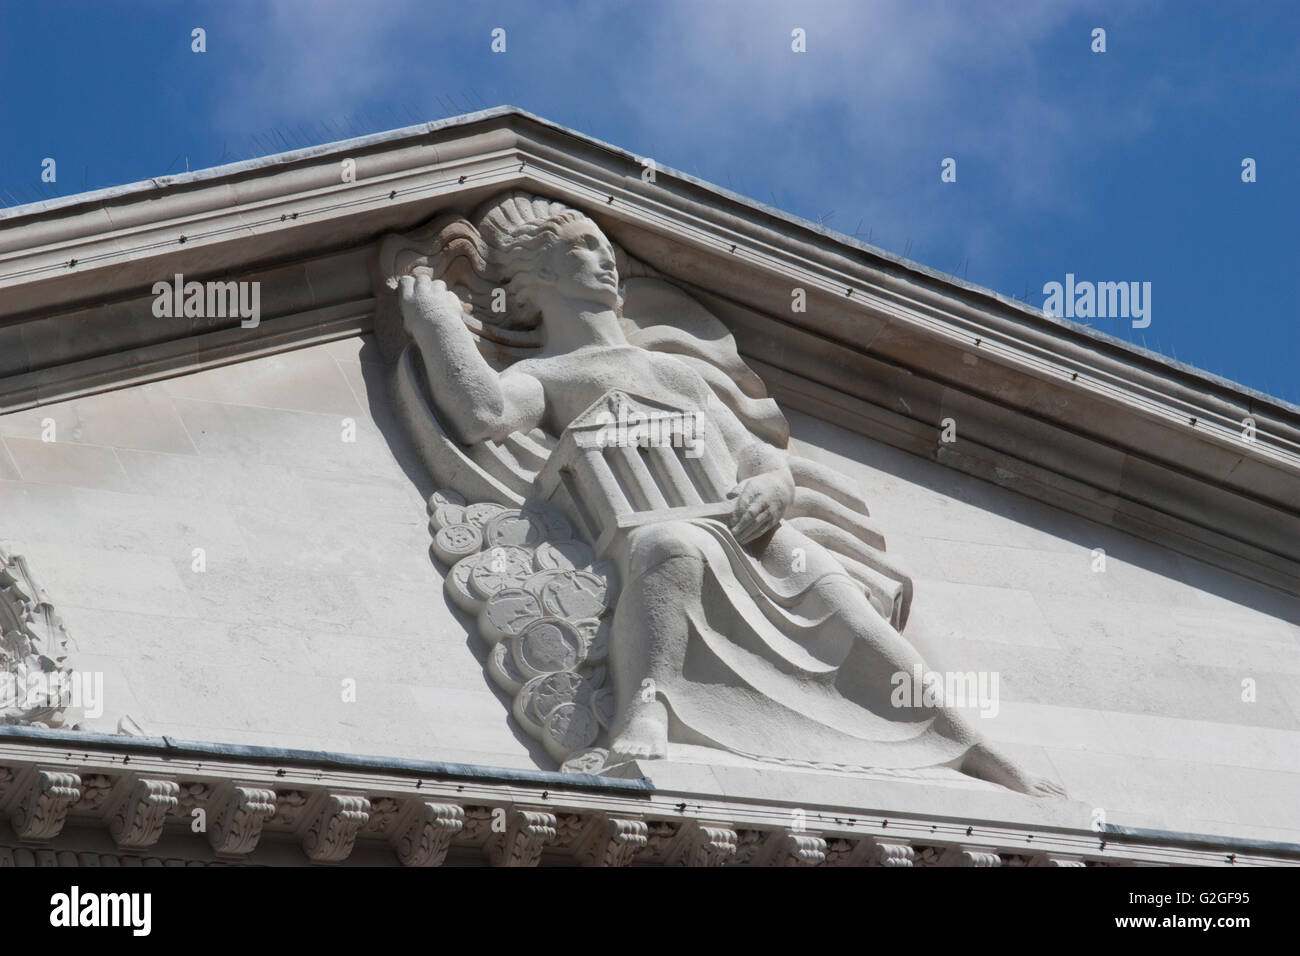 Bank of England Threadneedle street, details on roof - Stock Image